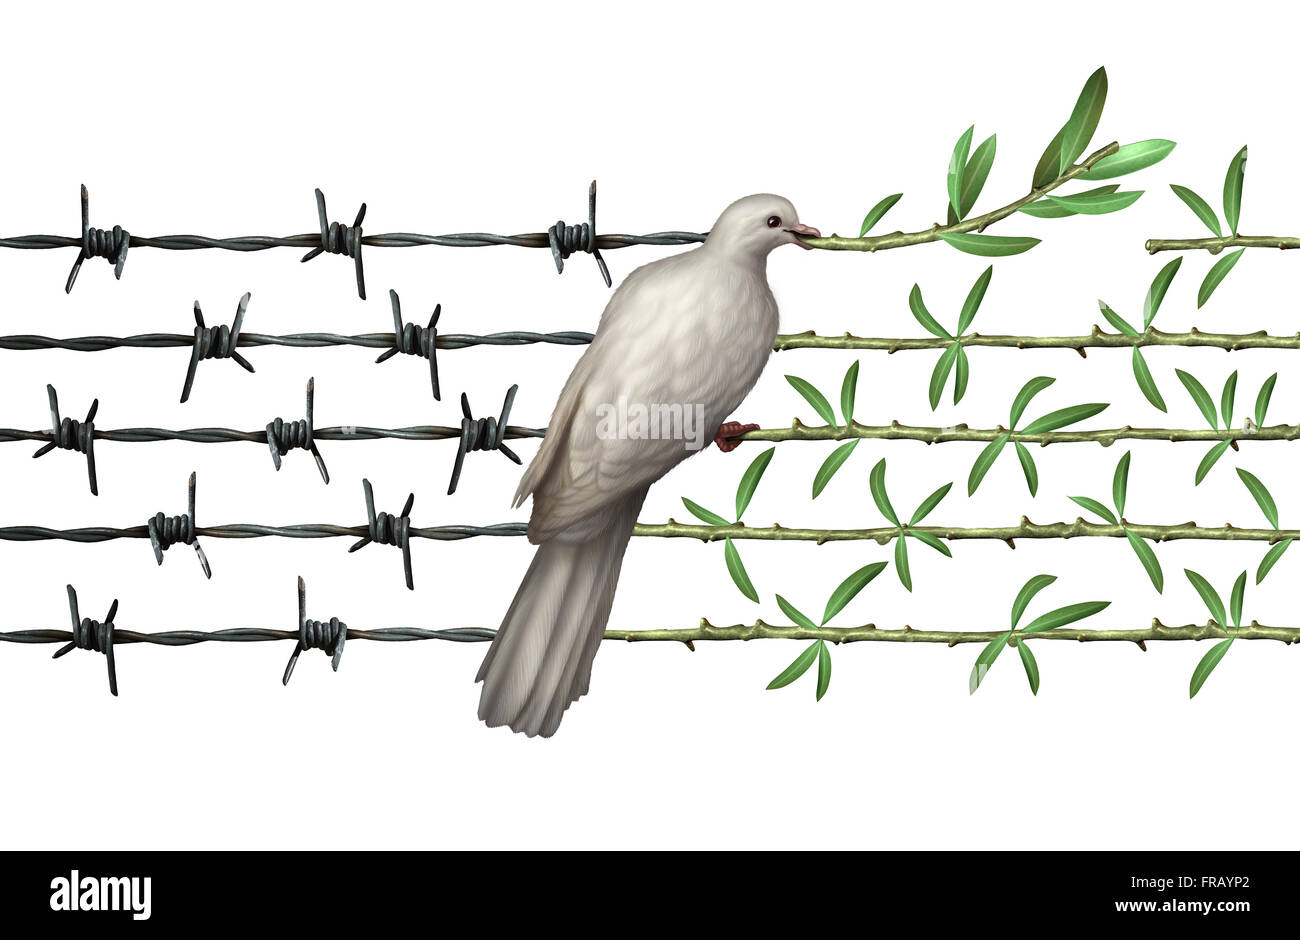 Optimism concept and diplomacy hope symbol as a dove on barbed wire to olive branches as an icon for good will of - Stock Image